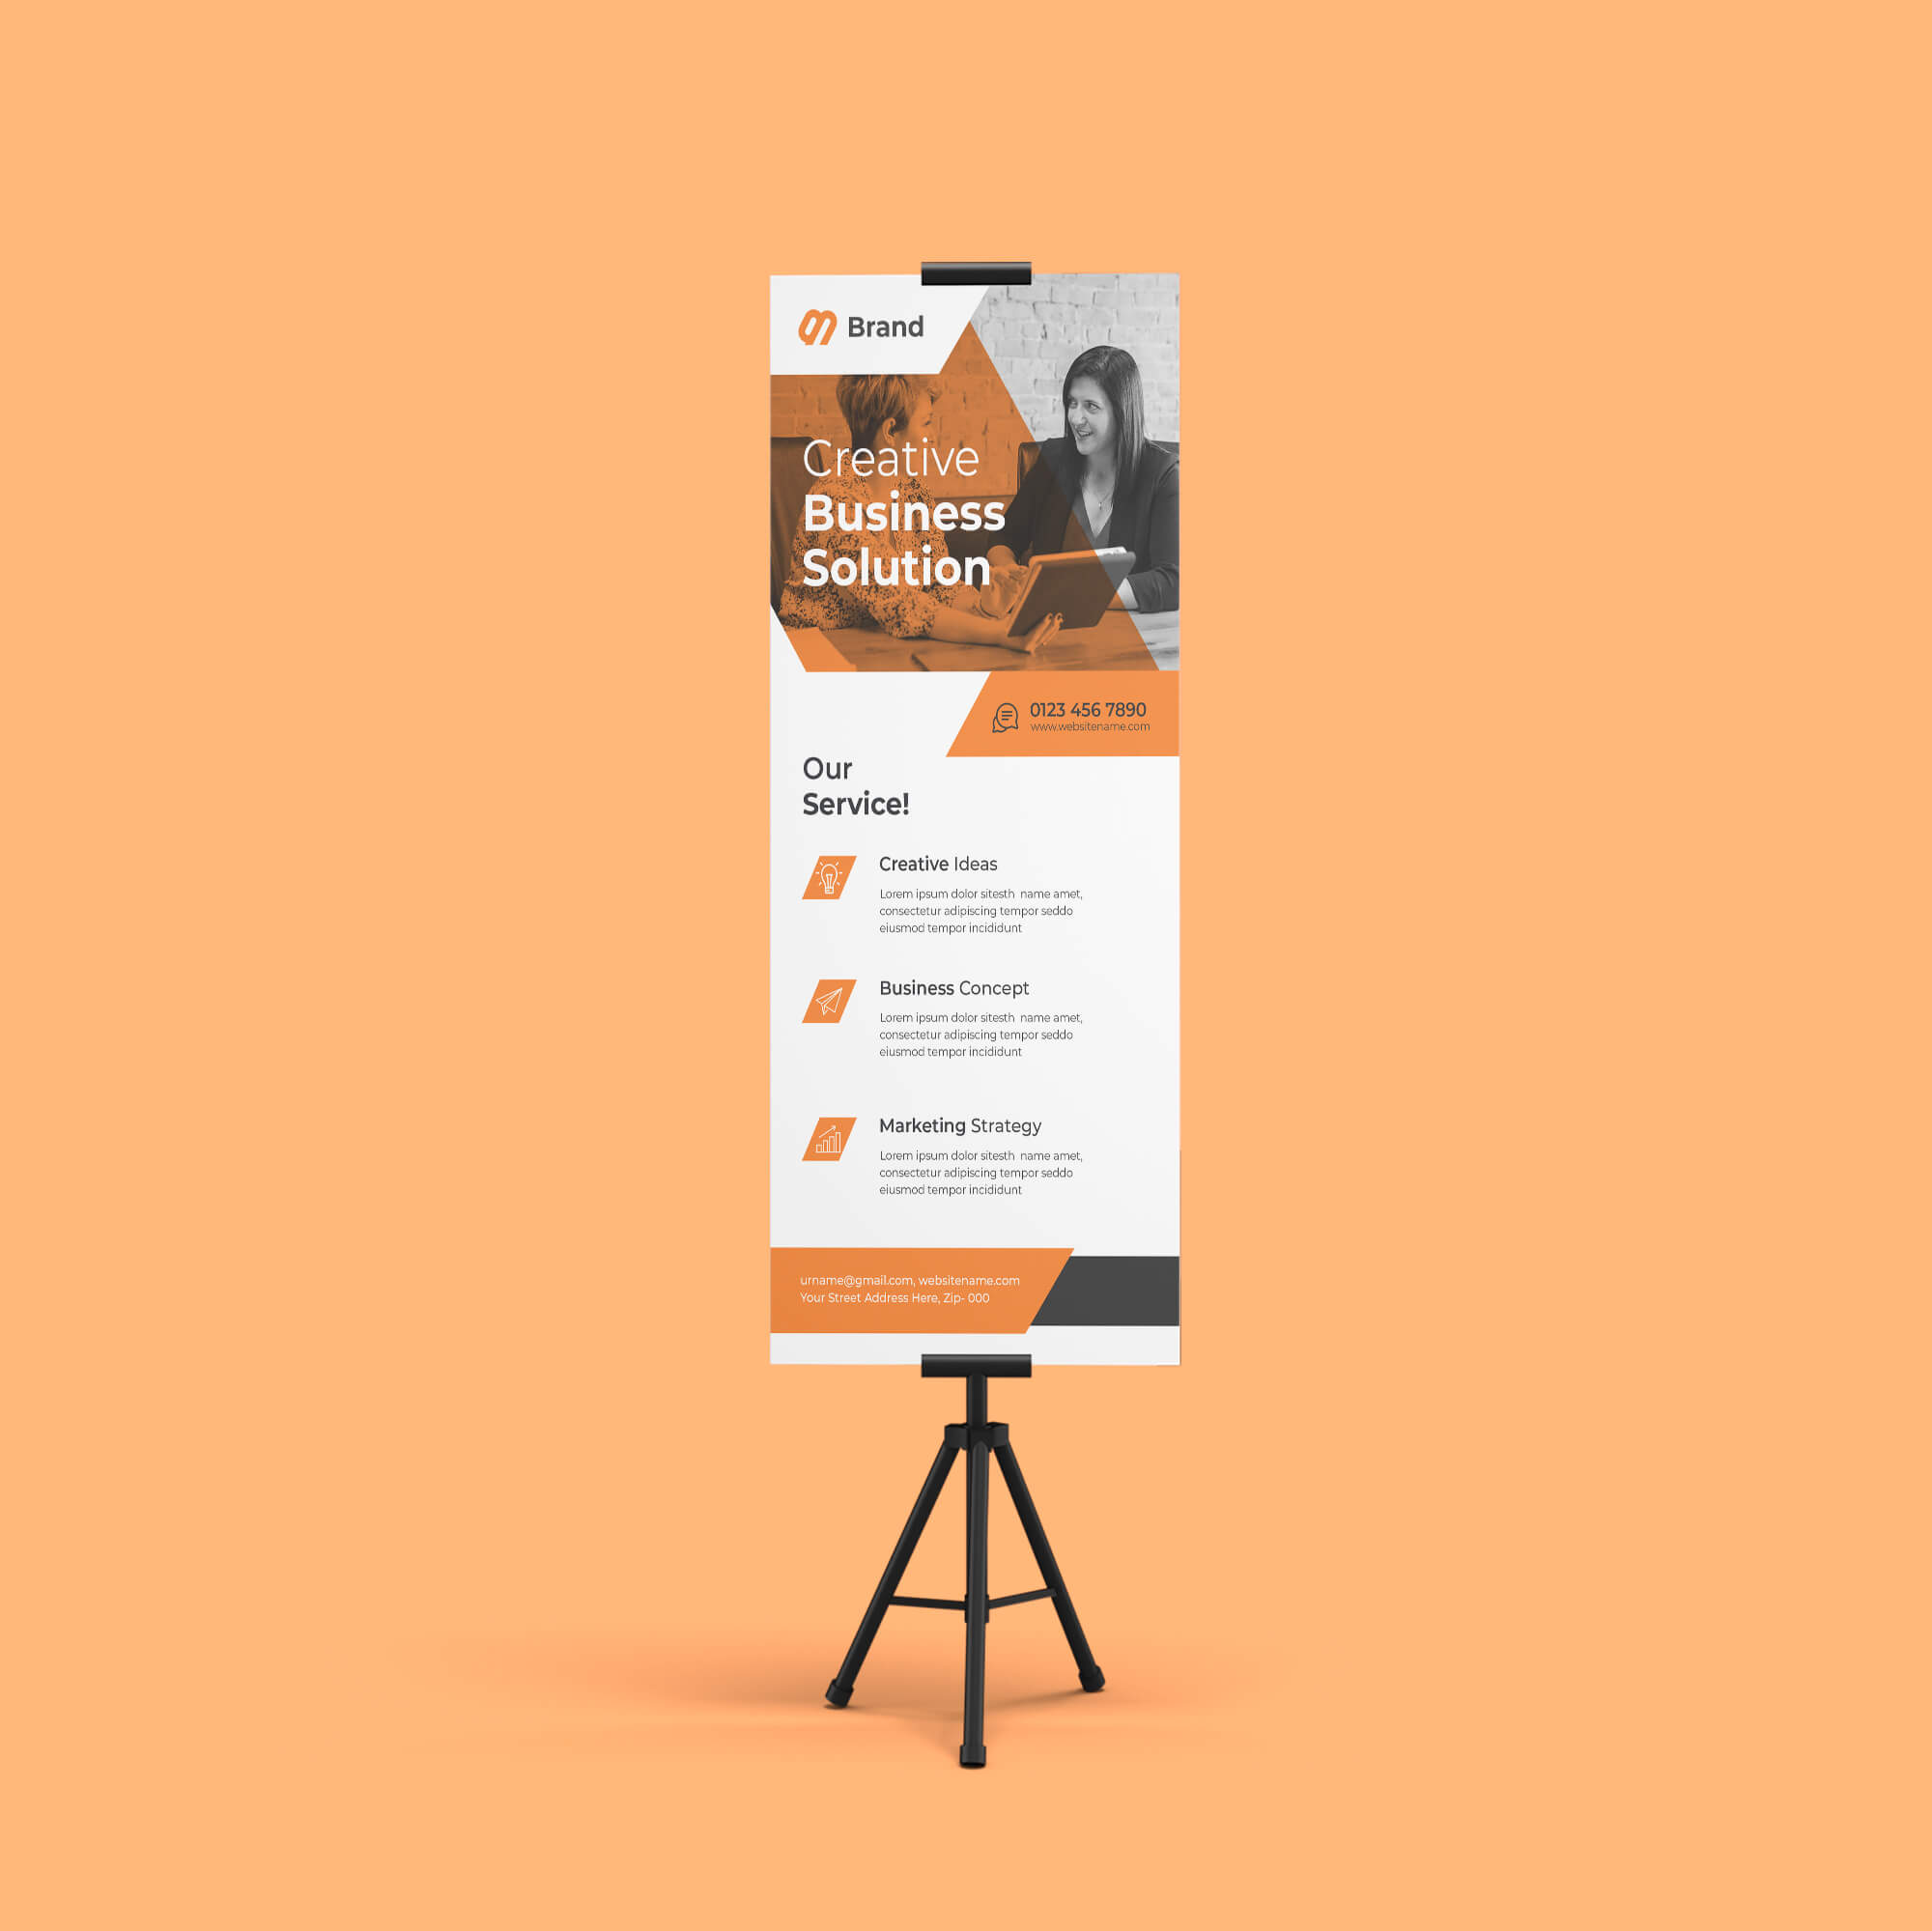 Design Free Exhibition Stand Mockup PSD Template